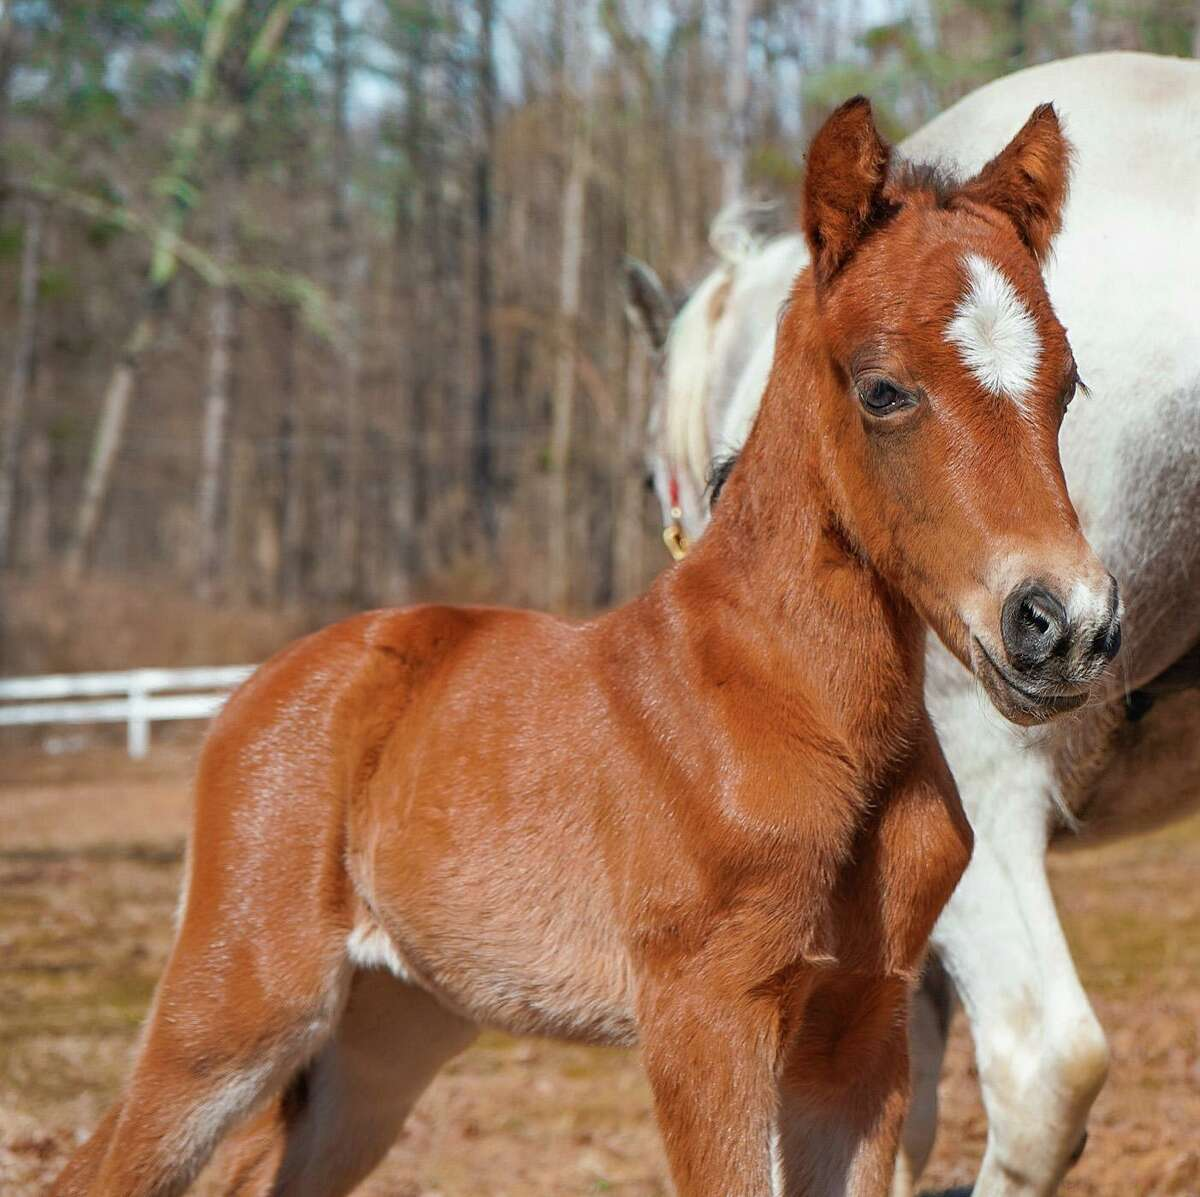 The Rising Starr horse rescue in Wilton, CT, welcomed Rumi into their fold when she was born on March 7, 2020.